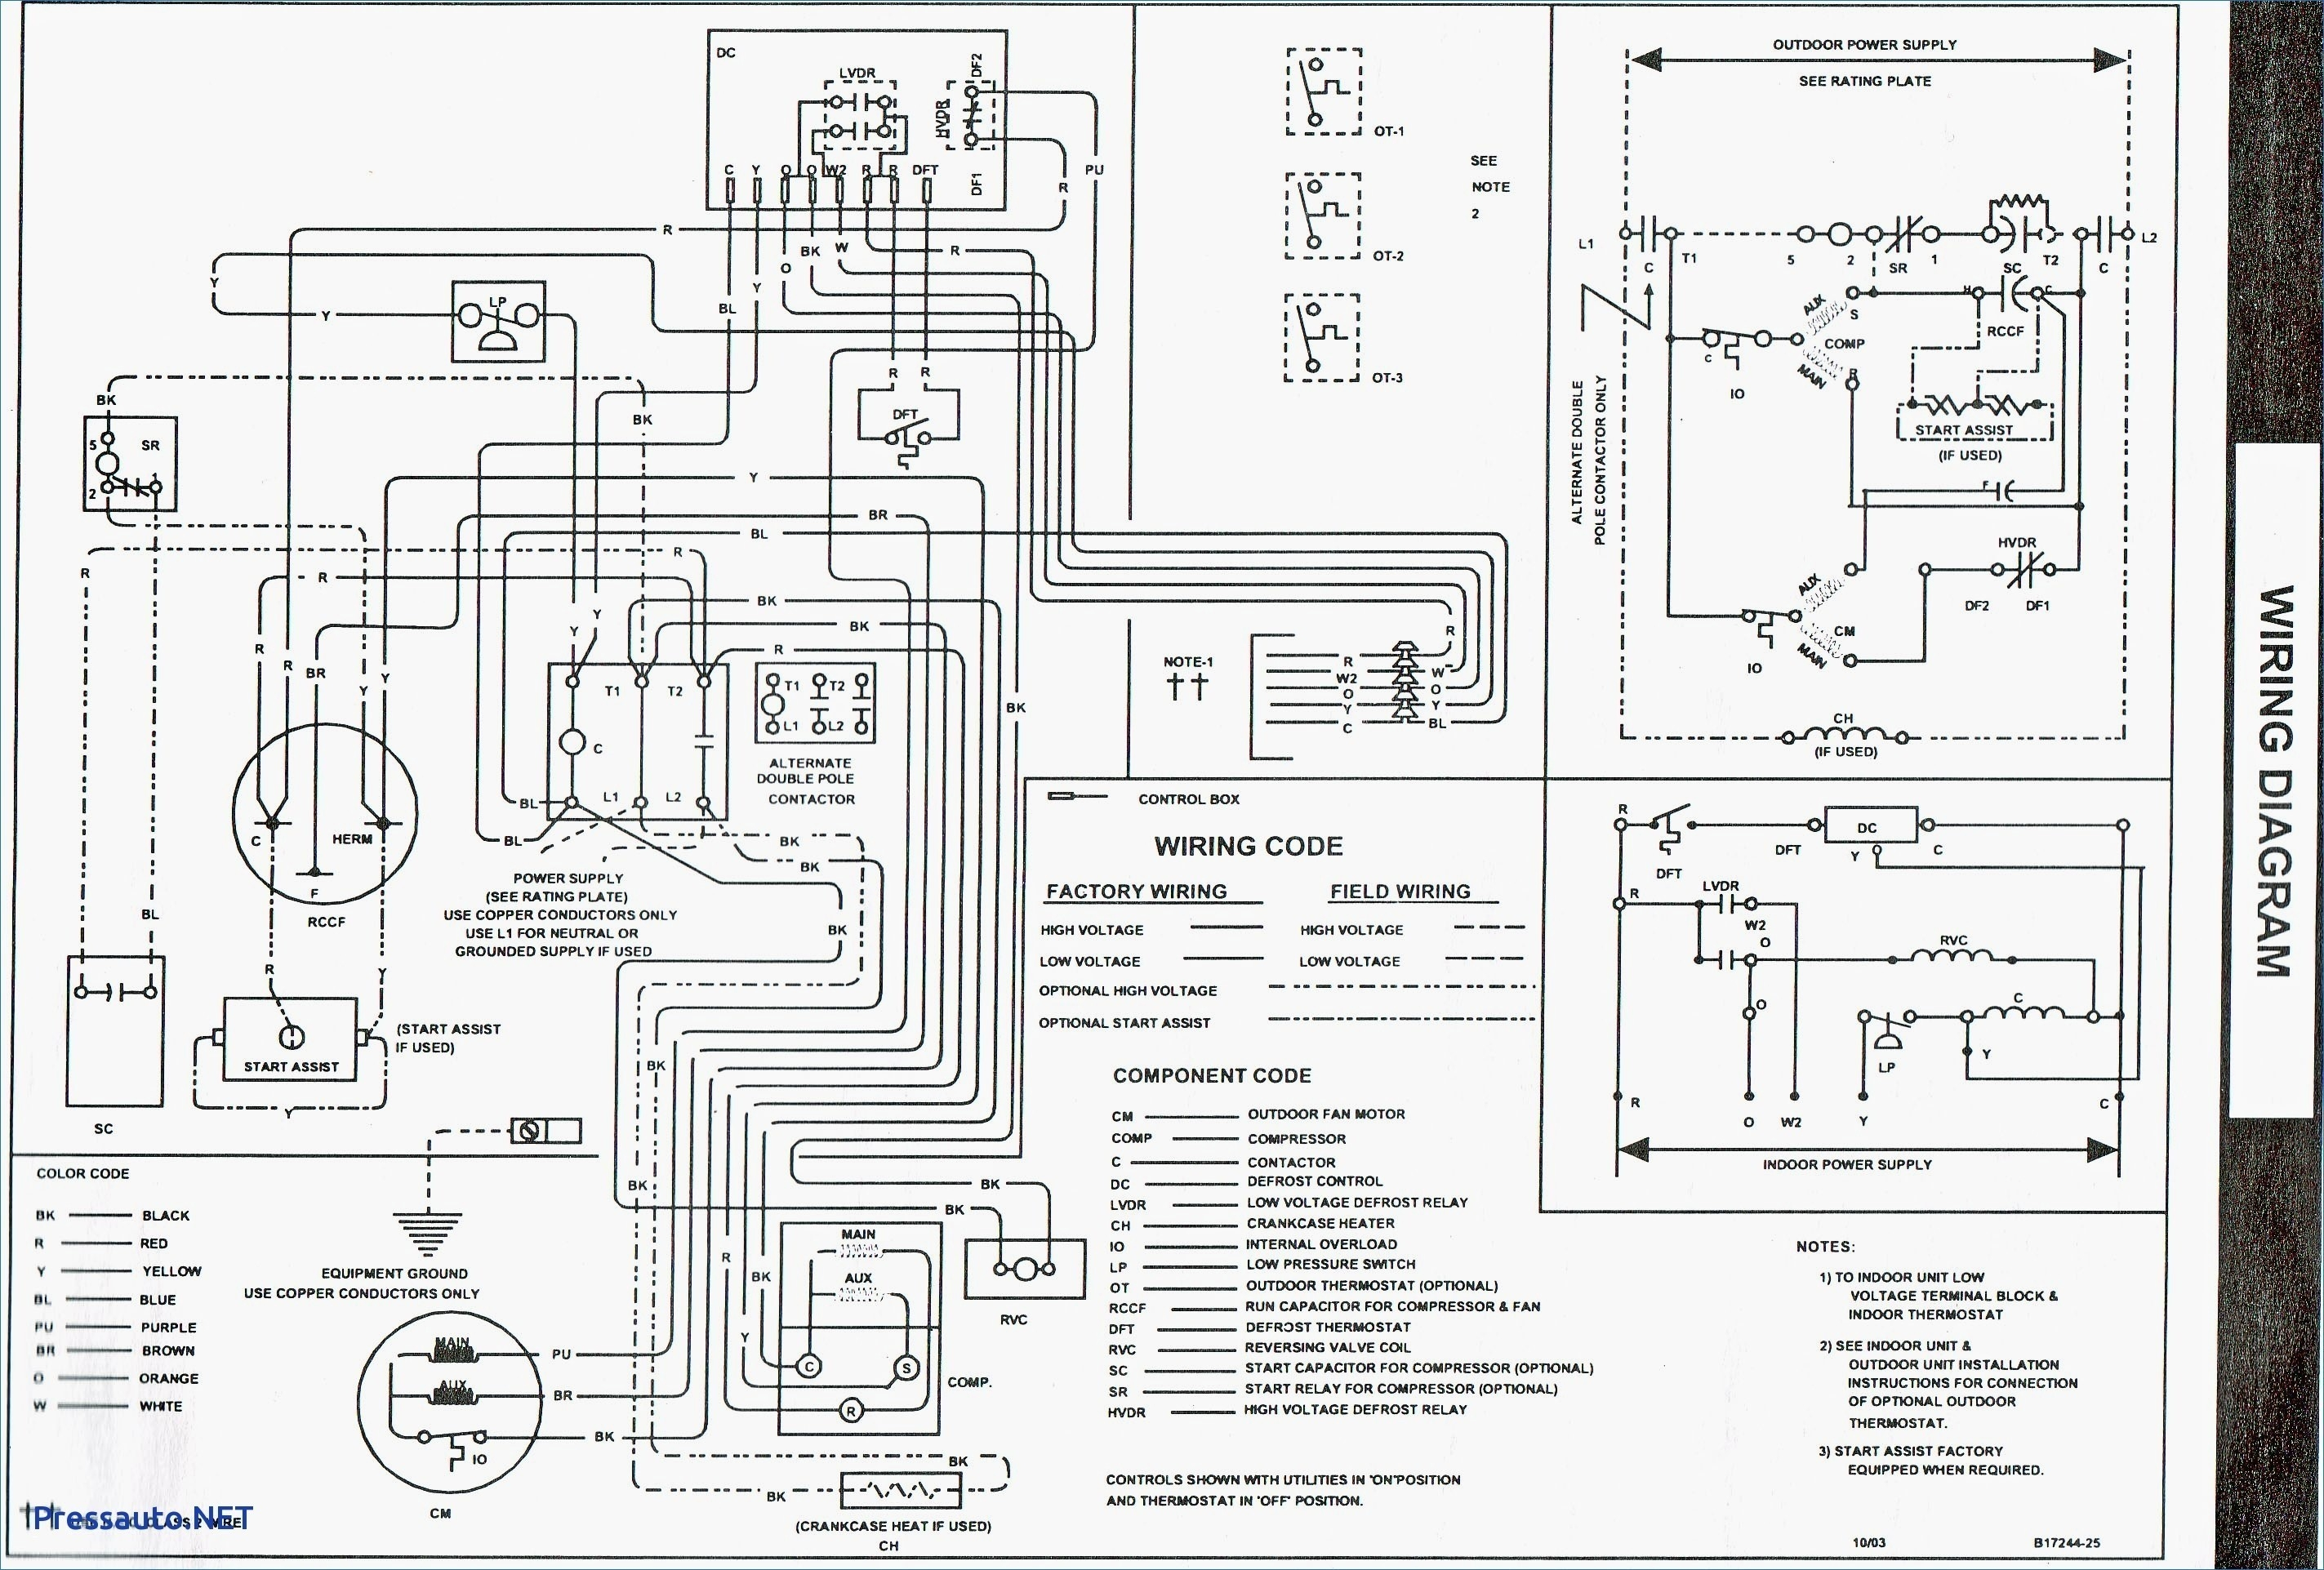 sterling gas heater wiring diagram for goodman gas furnace wiring diagram | free wiring diagram #13